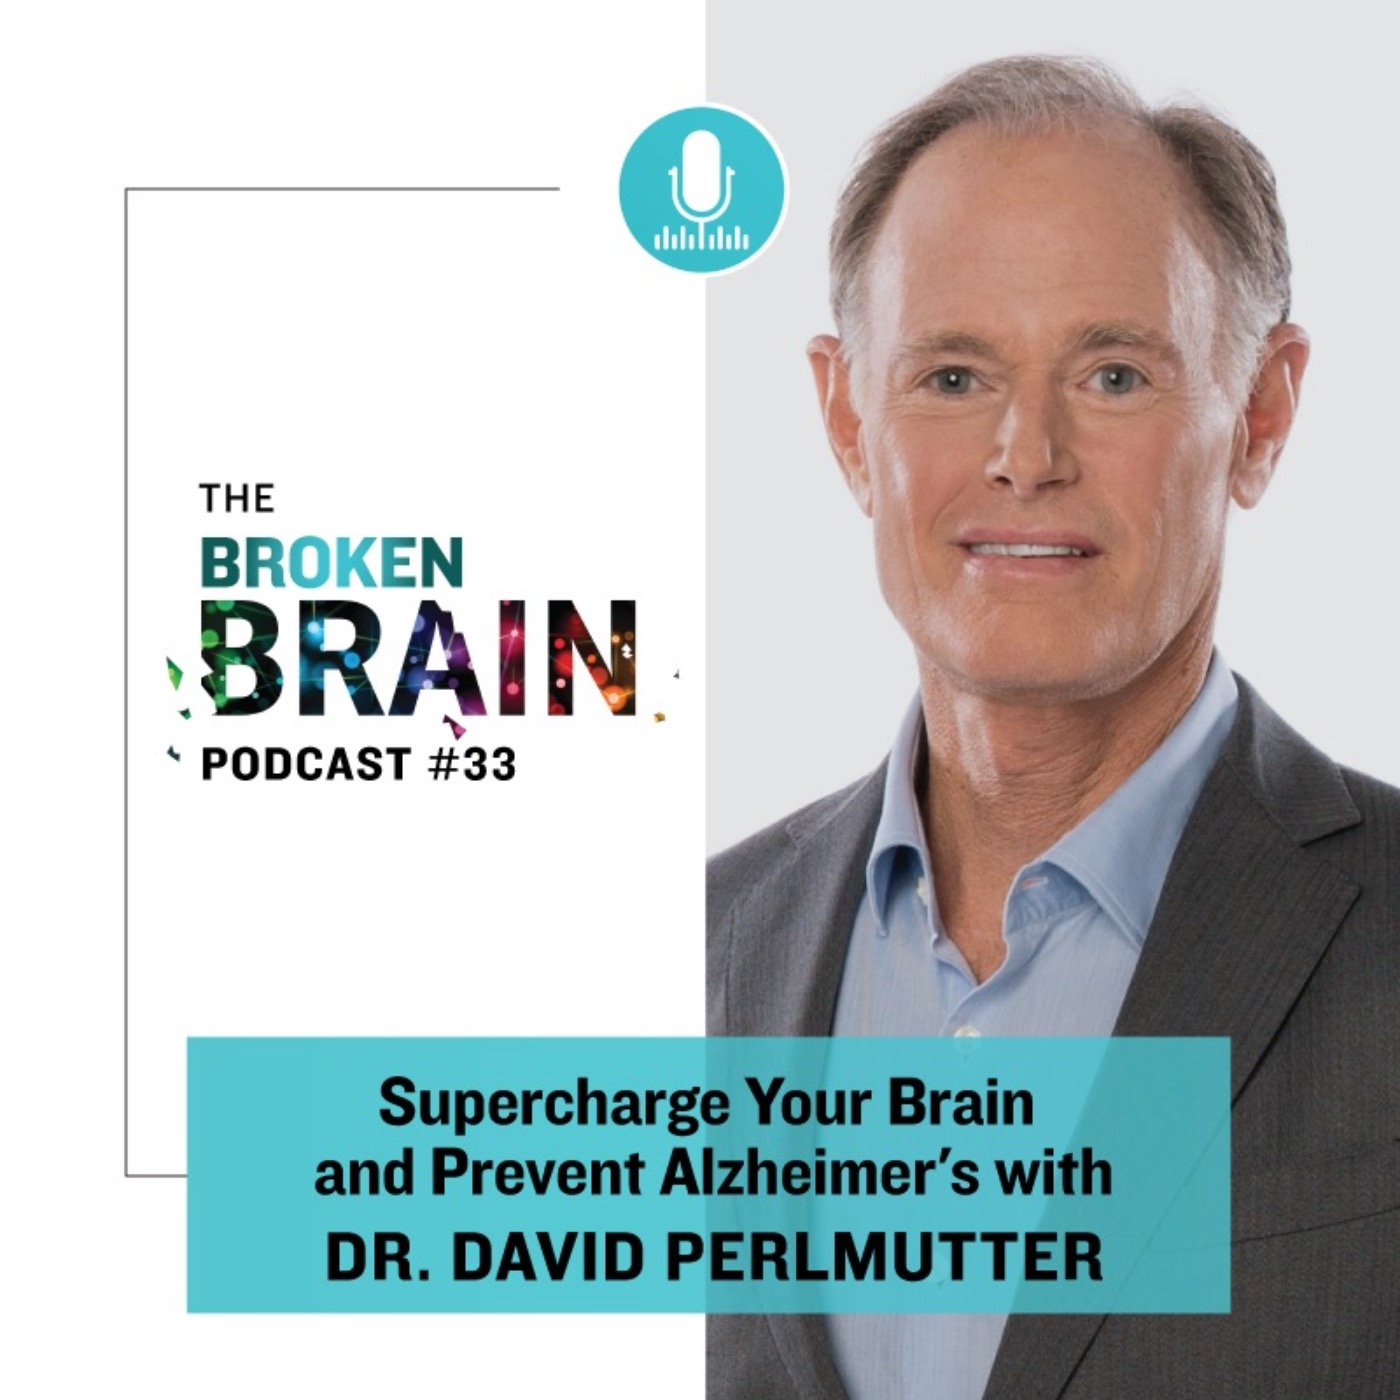 #33: Supercharge Your Brain and Prevent Alzheimer's with Dr. David Perlmutter